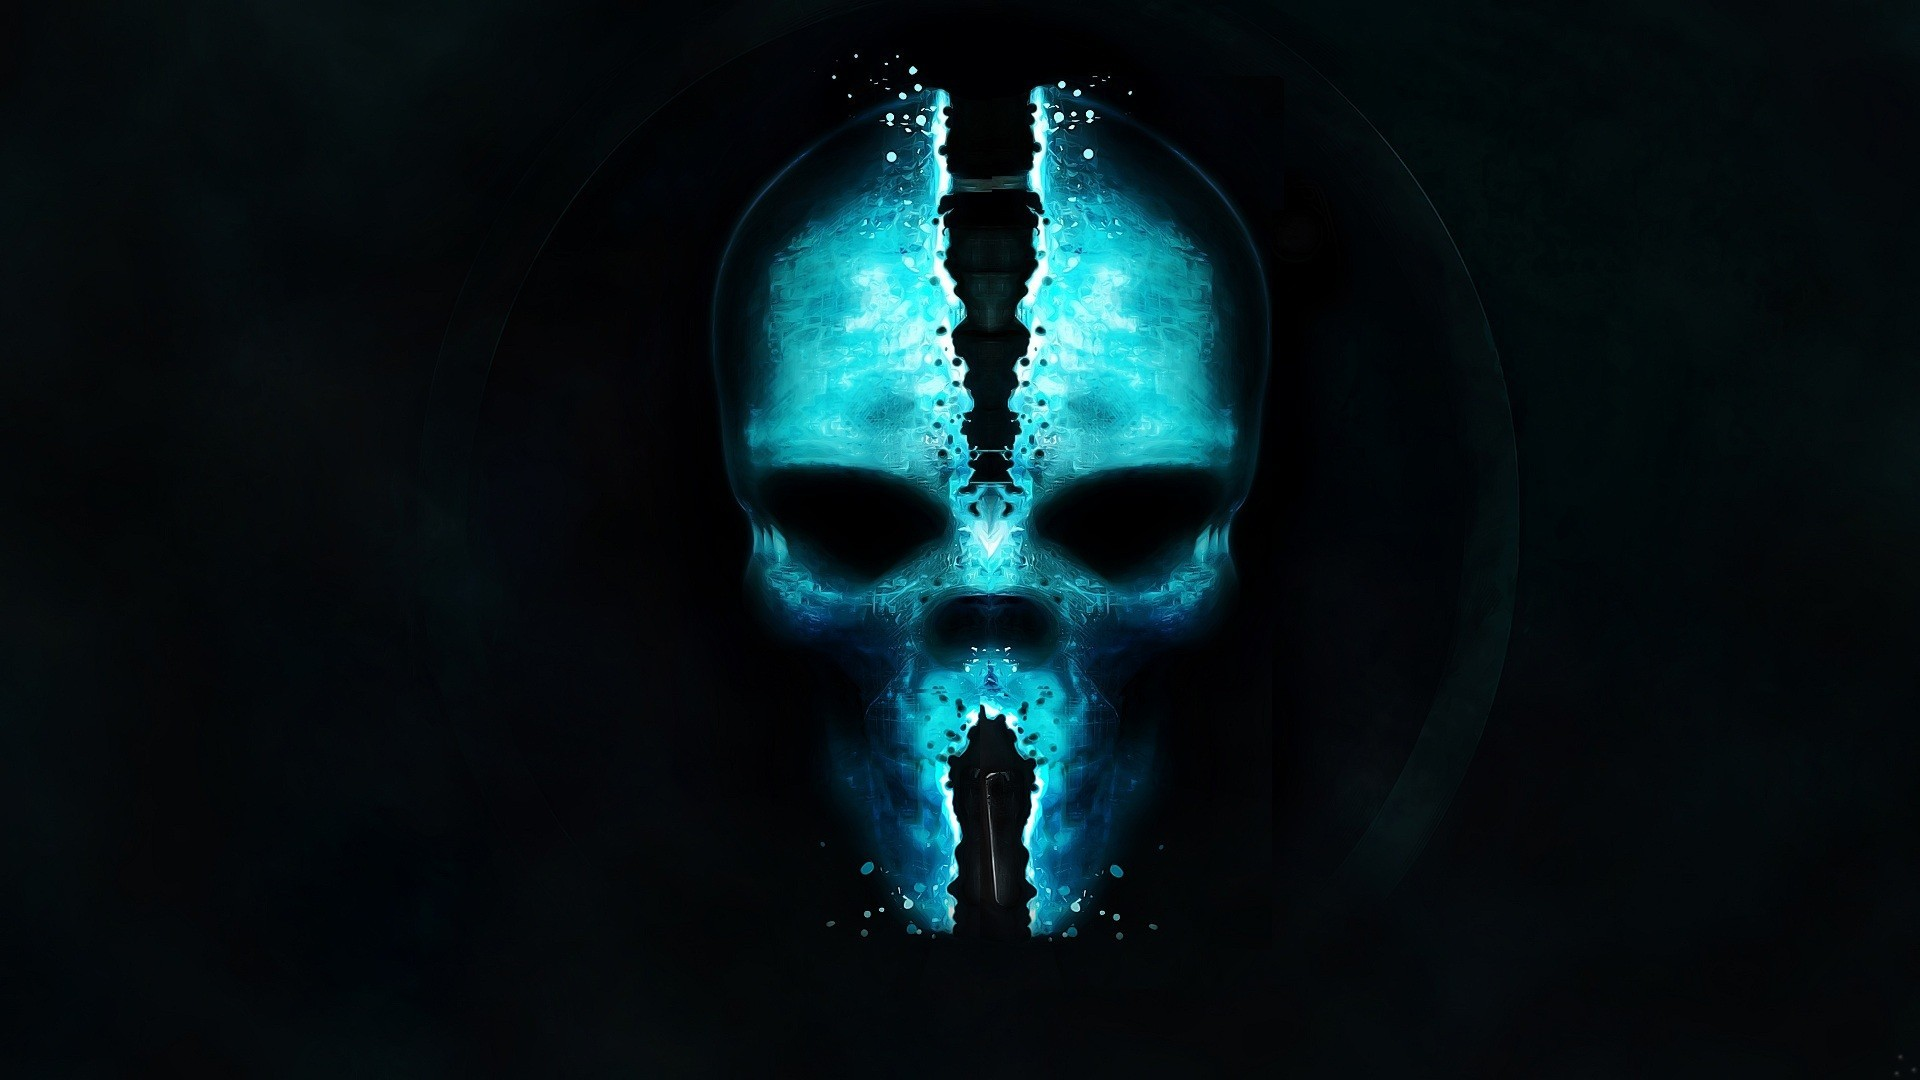 Ghost Recon Skull Wallpapers